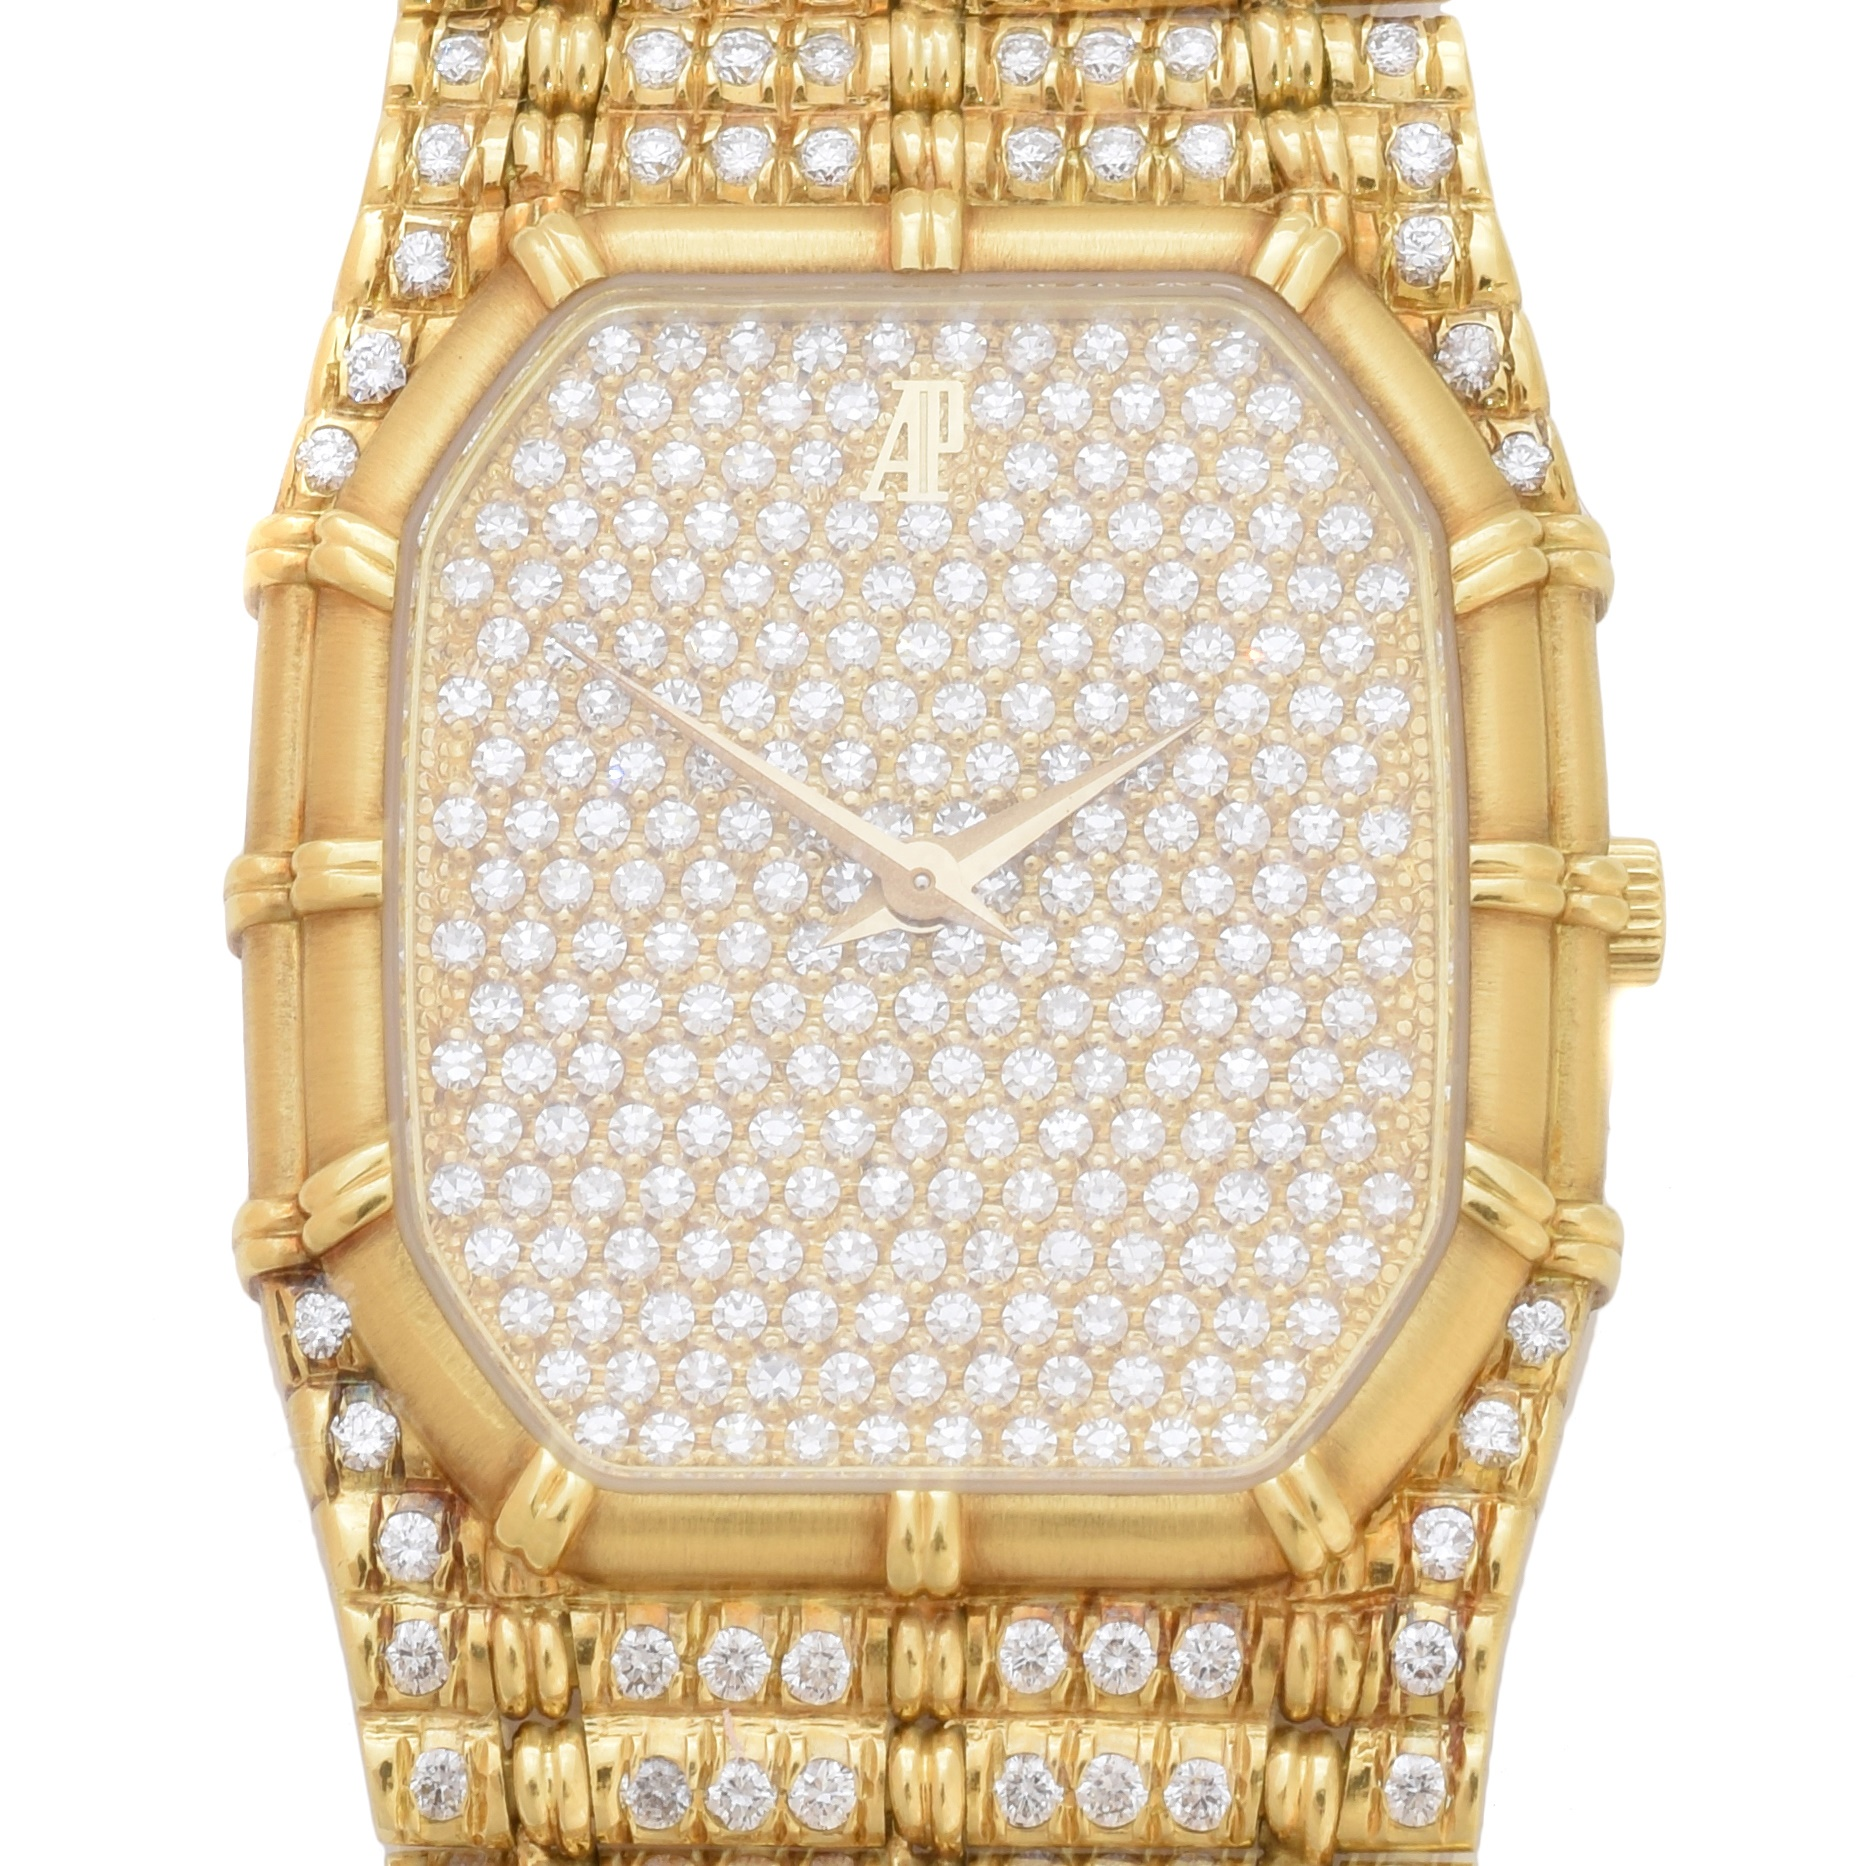 An 18ct gold diamond Audemars Piguet wristwatch, ref C12337, the full diamond set dial with bamboo bezel and similarly set fancy link bracelet with folding clasp, Swiss assay marks, estimated total diamond weight 5.50-6cts, quartz movement, case diameter 27mm, gross weight 89.6g. Sold for £12,200.